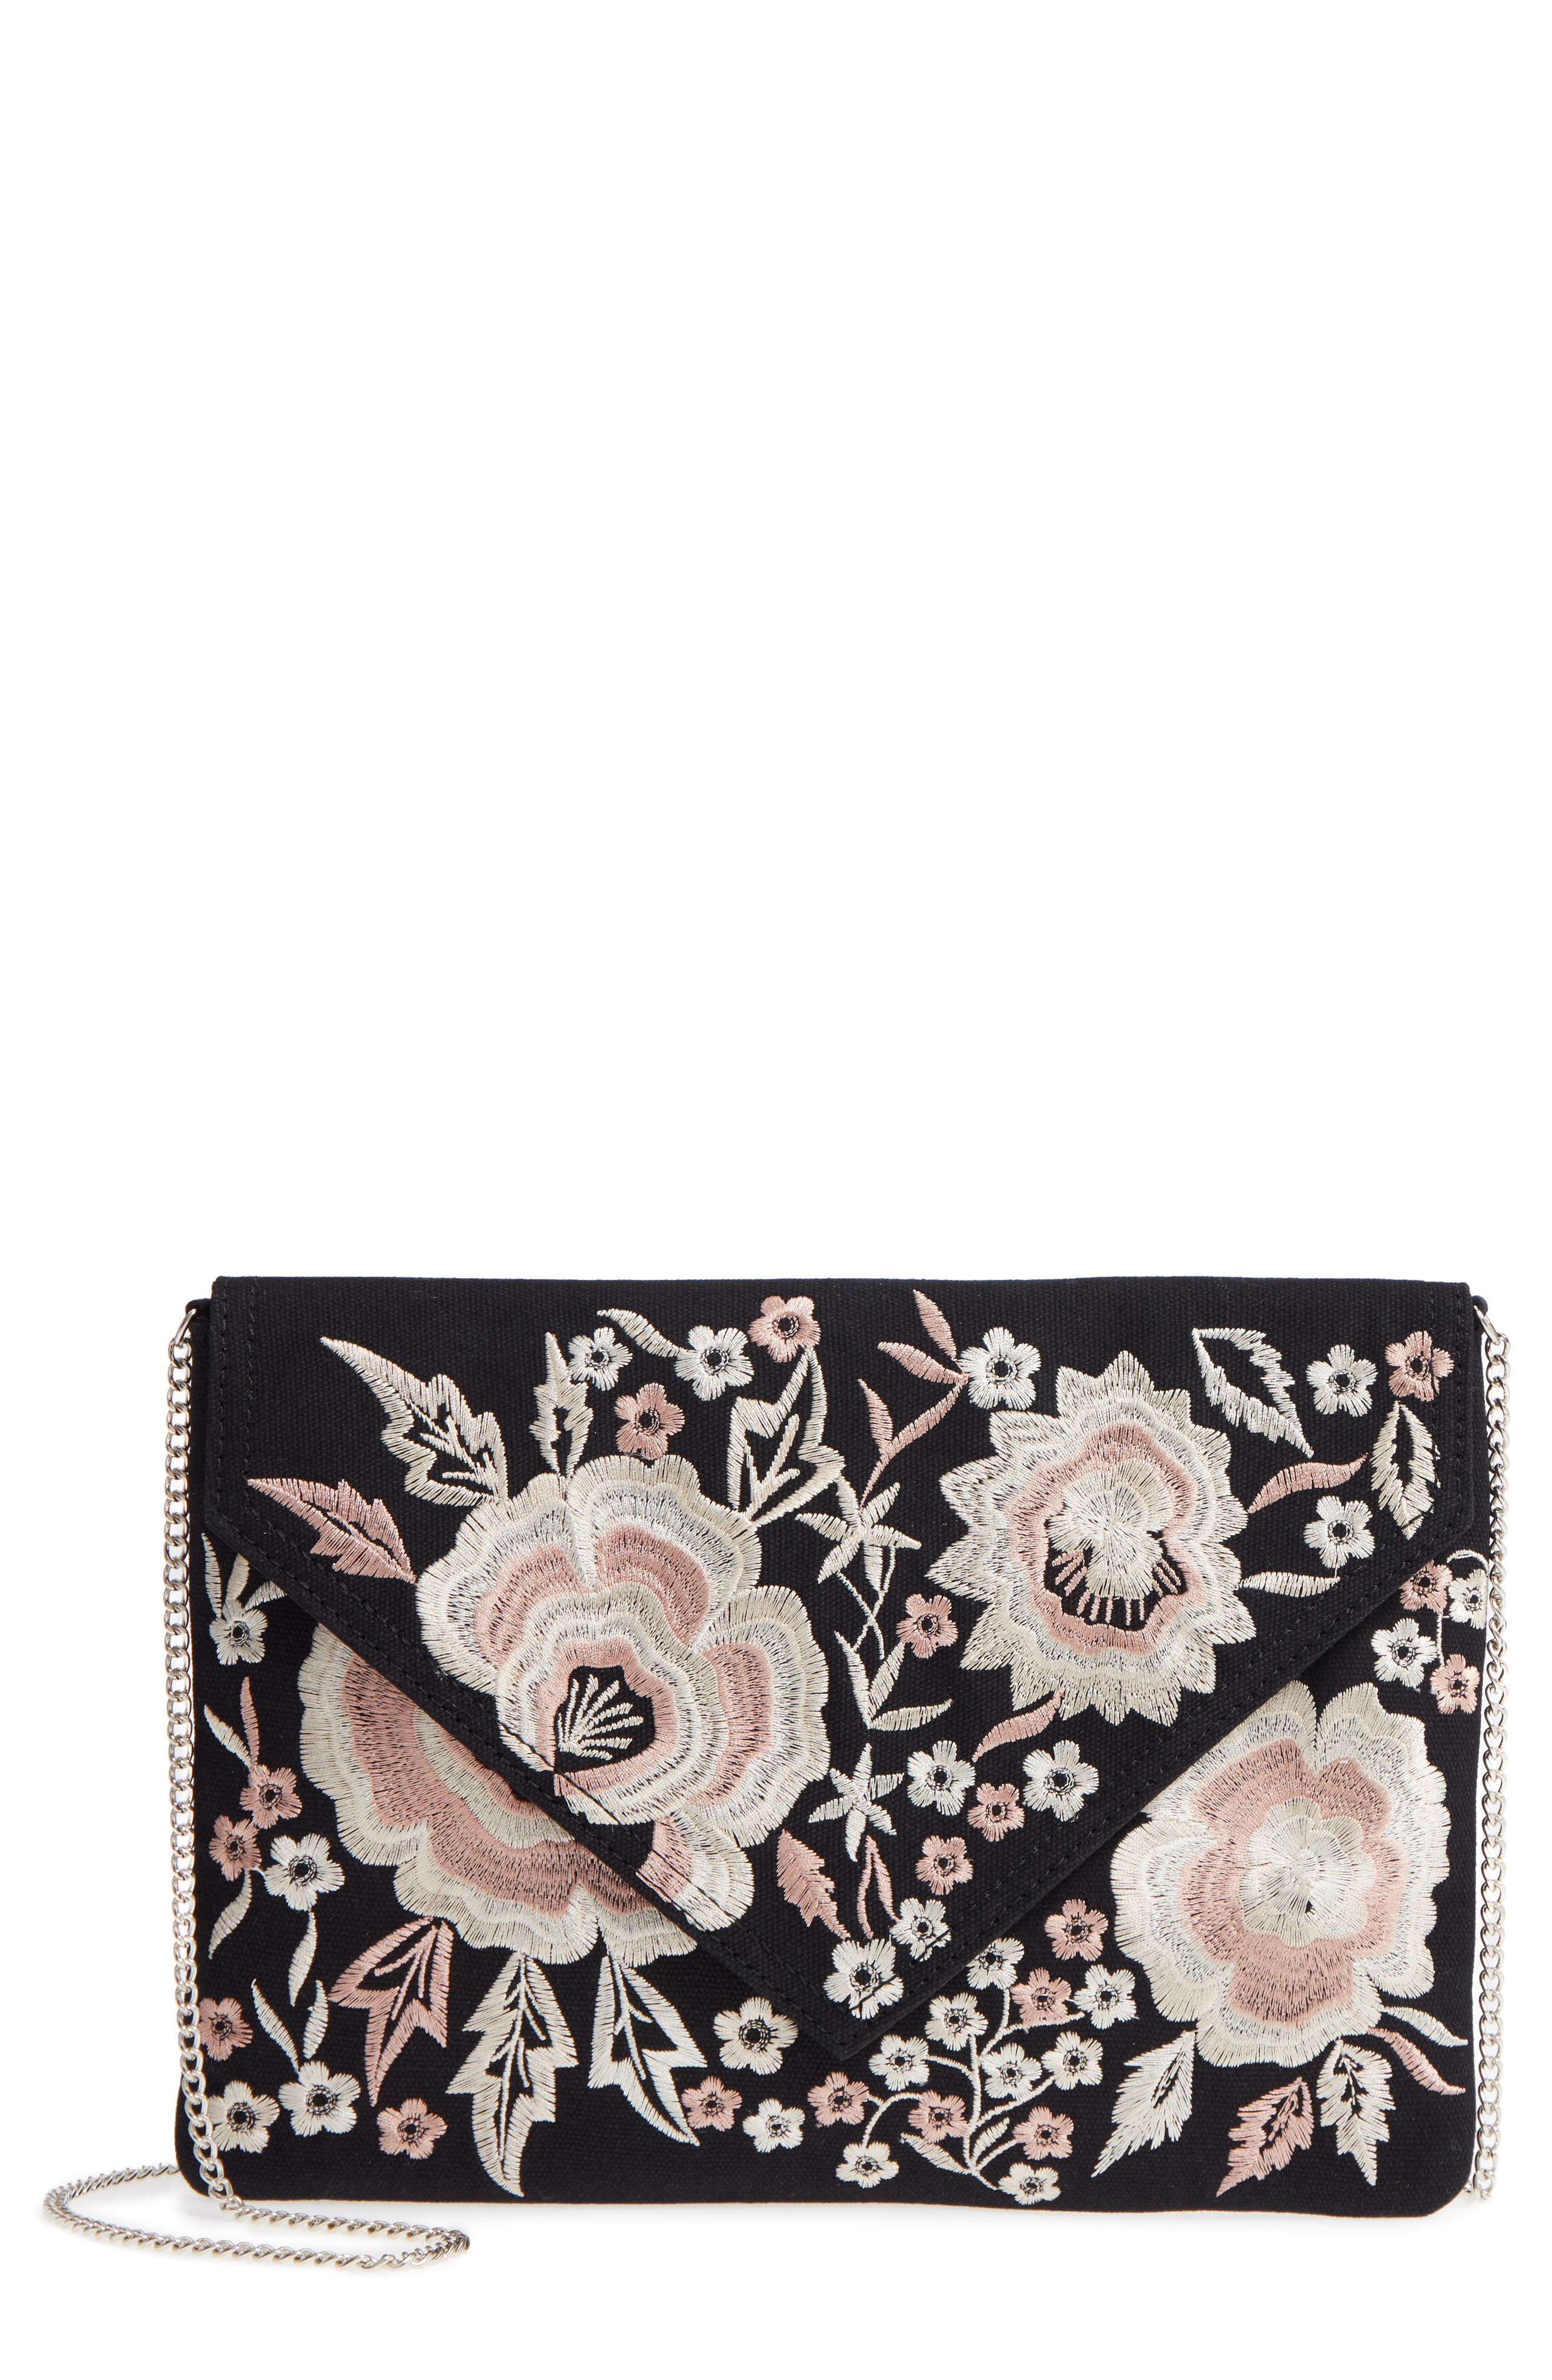 Violet Ray New York Vanessa Floral Embroidered Crossbody Bag